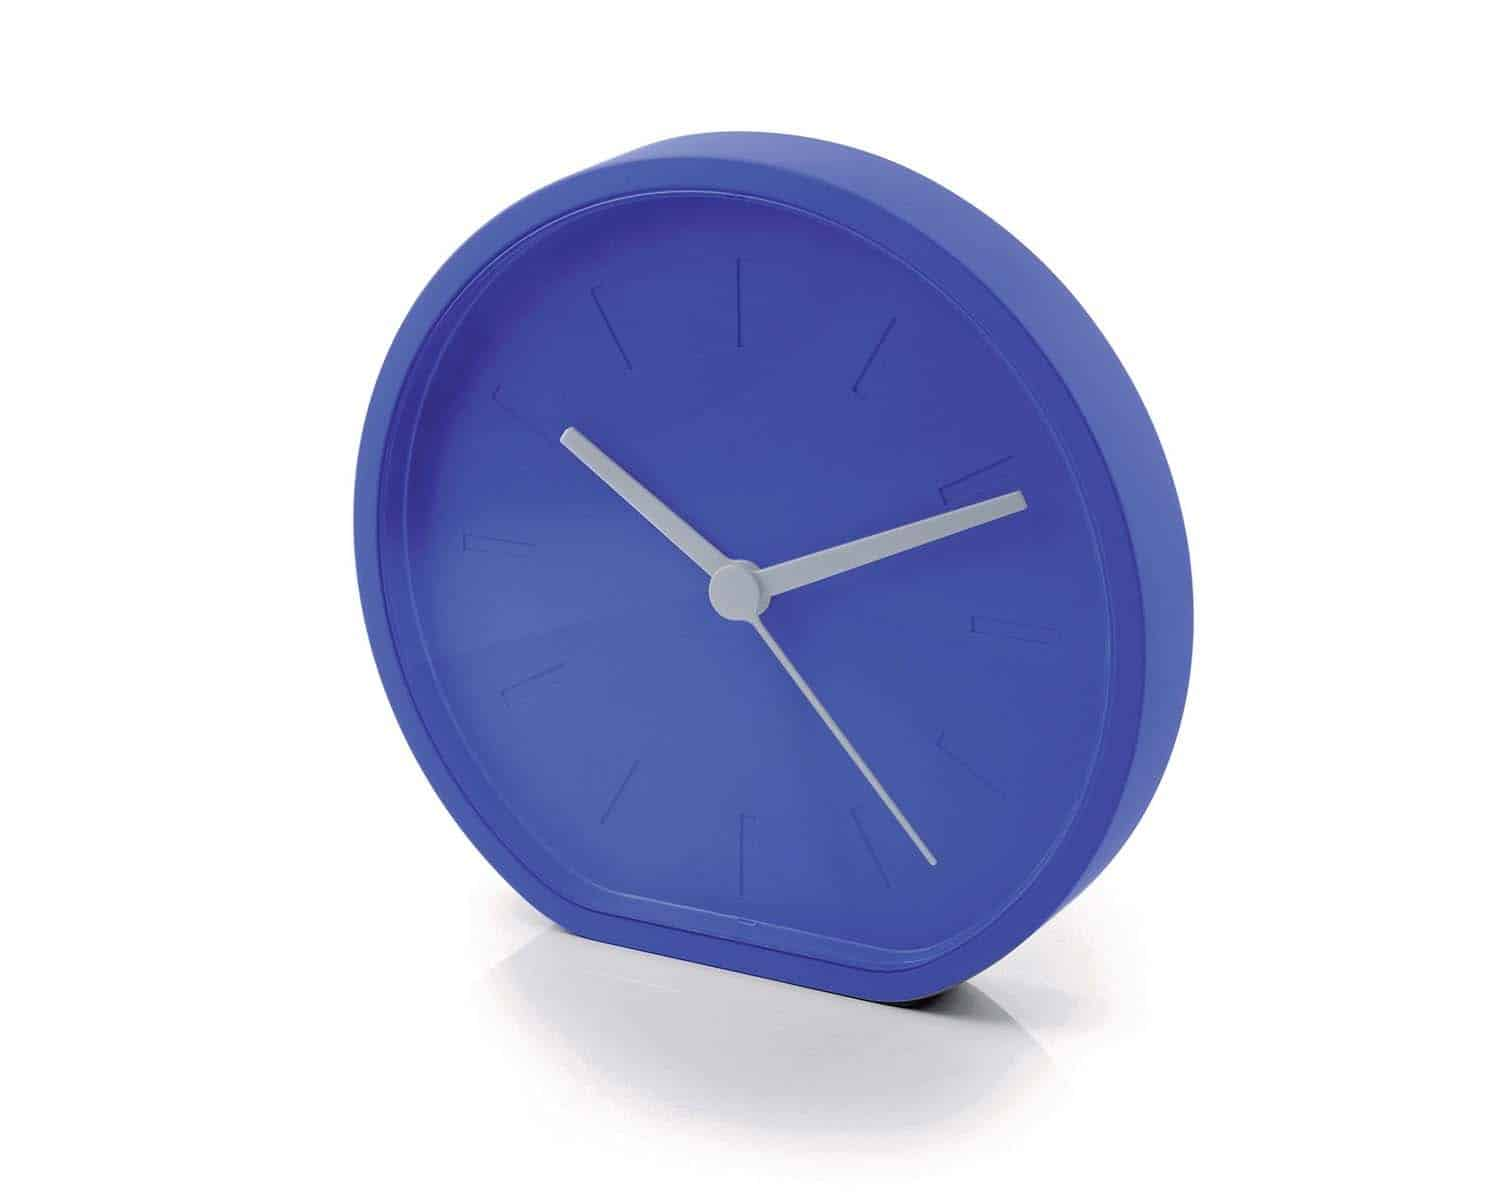 Lexon LR122G Beside Analogue Clock Blue Simple Design Clock